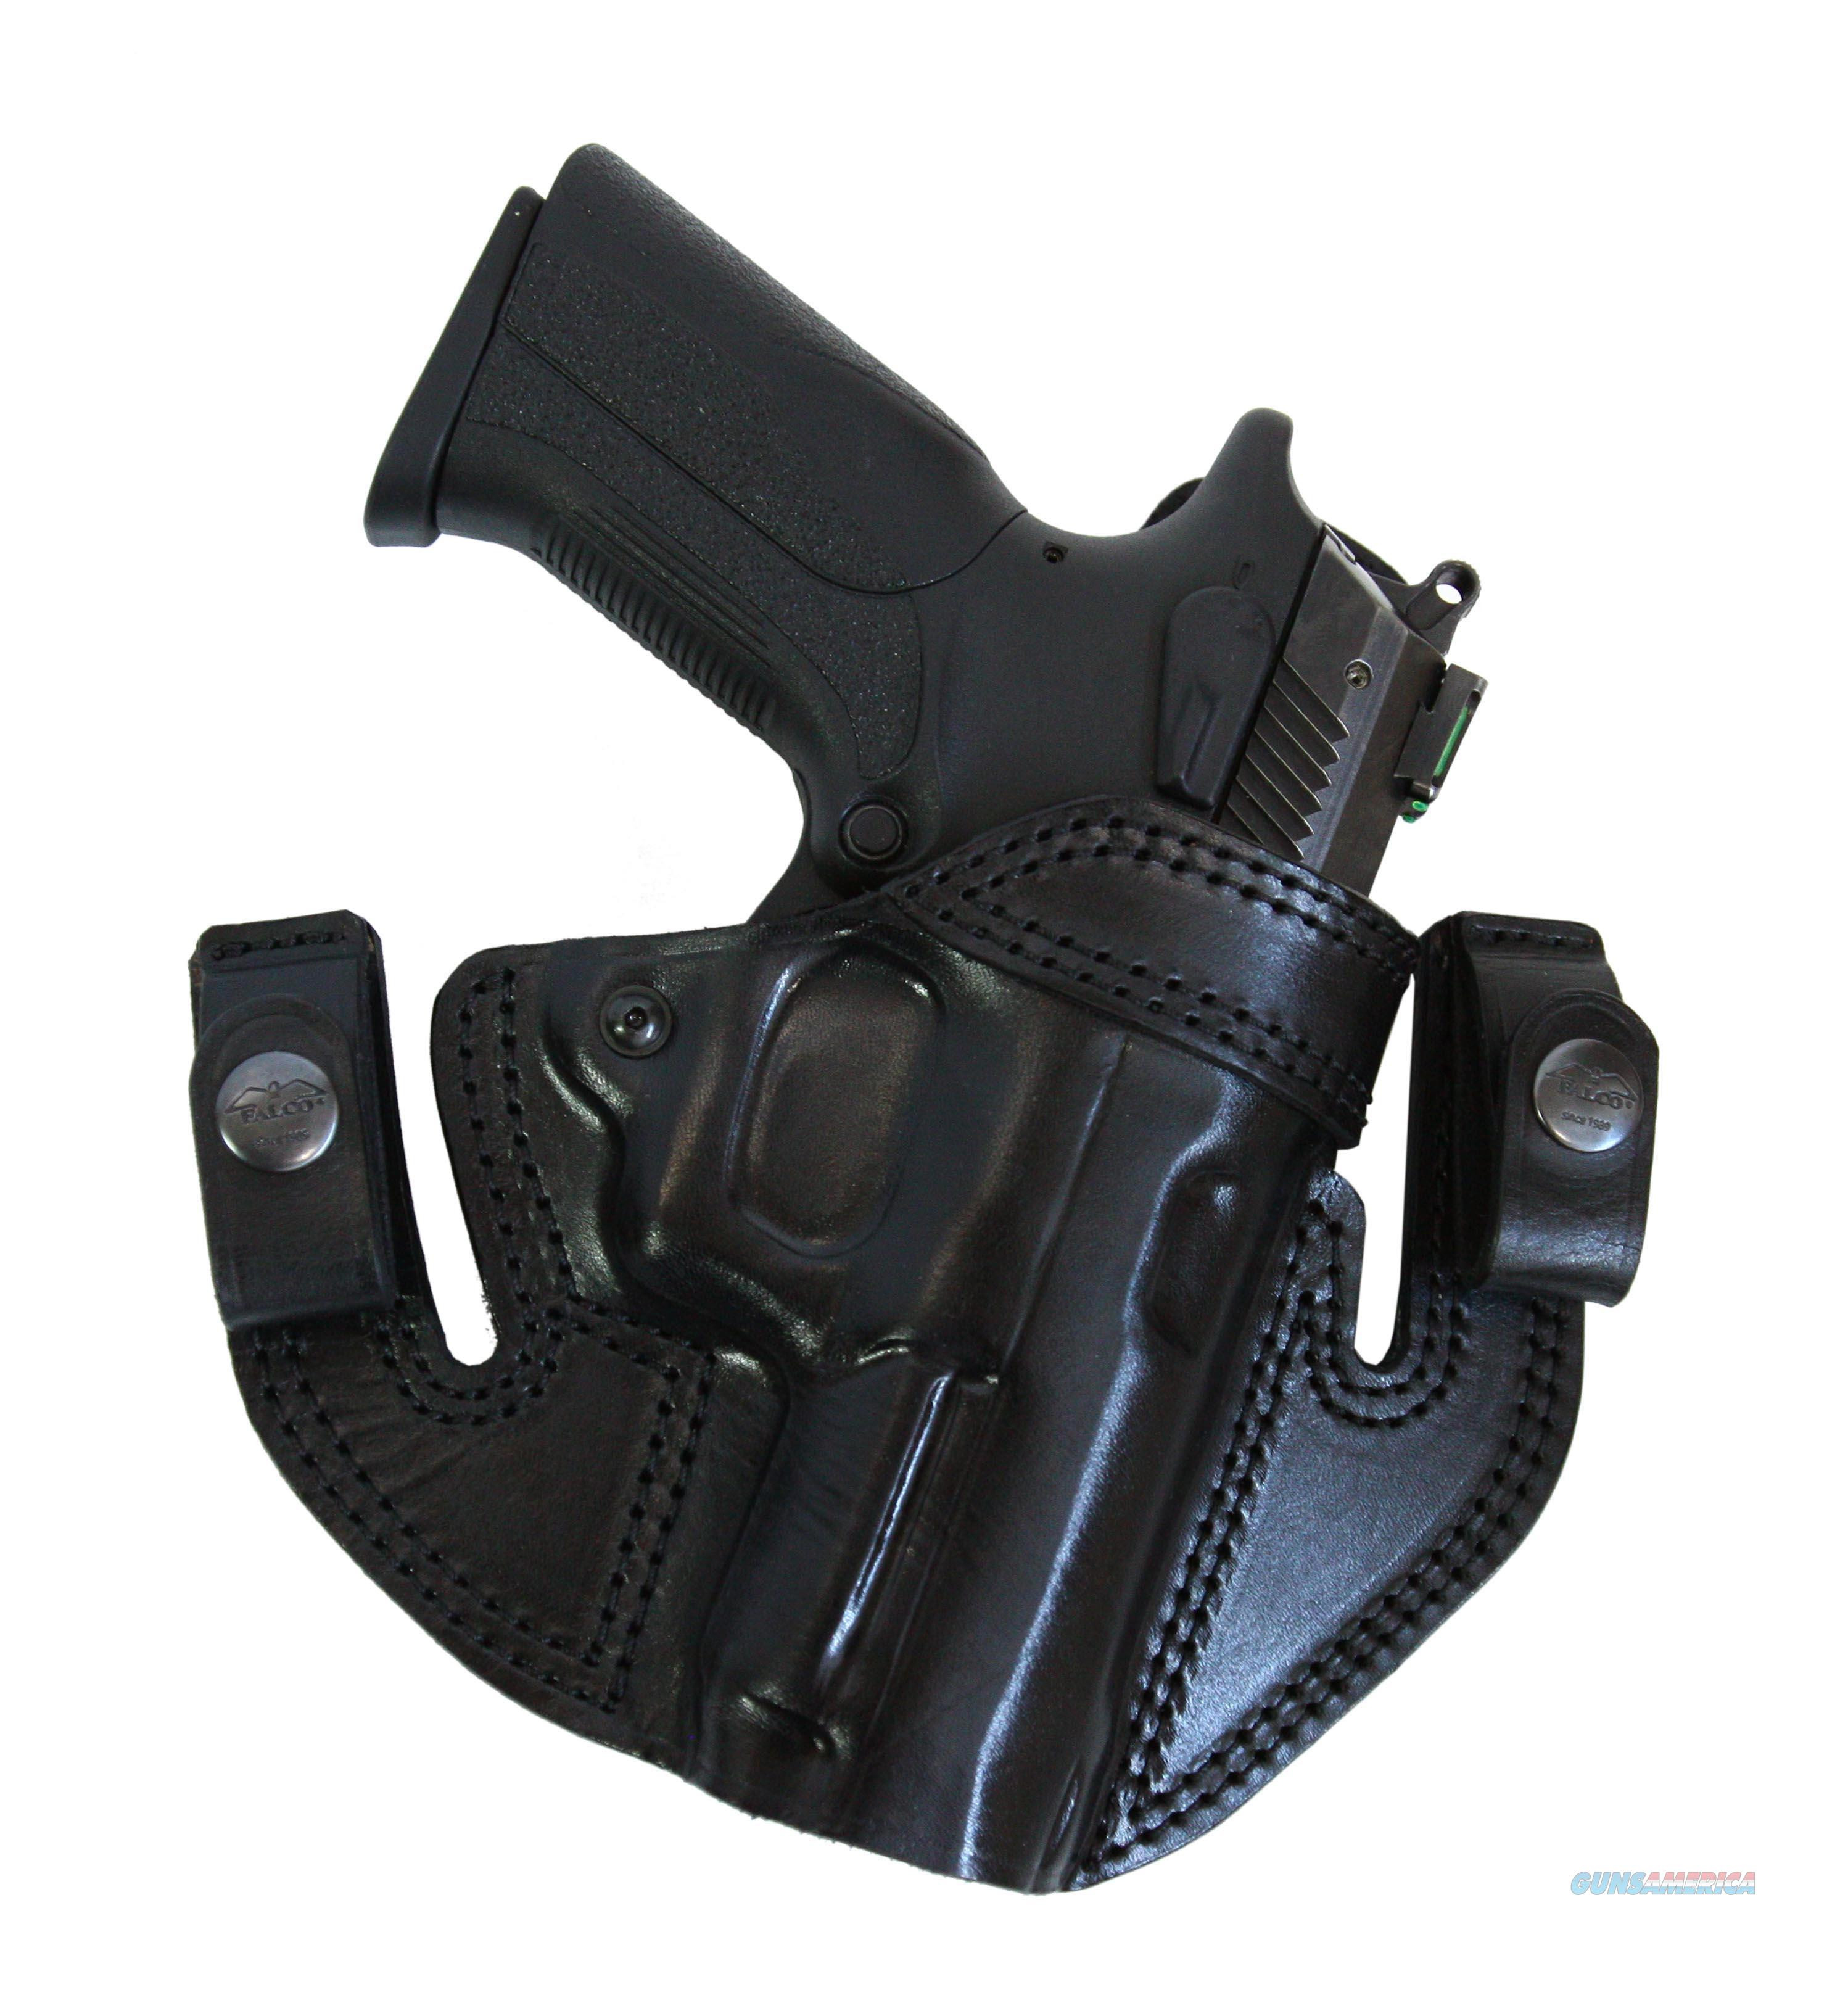 IWB / OWB Leather Gun Holster  CZ 2075 REMI  Non-Guns > Holsters and Gunleather > Concealed Carry